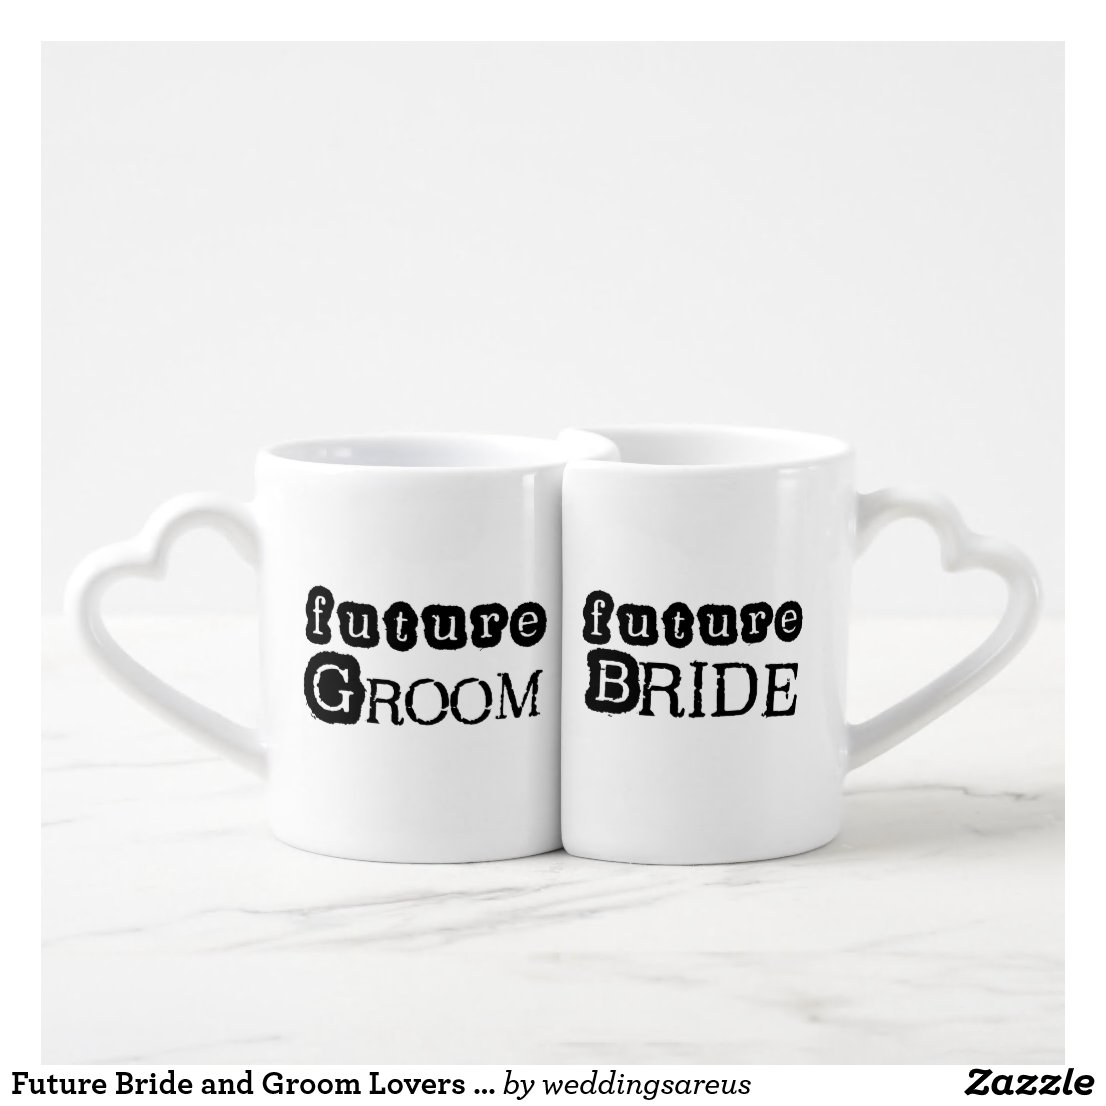 Future Bride and Groom Lovers Mugs